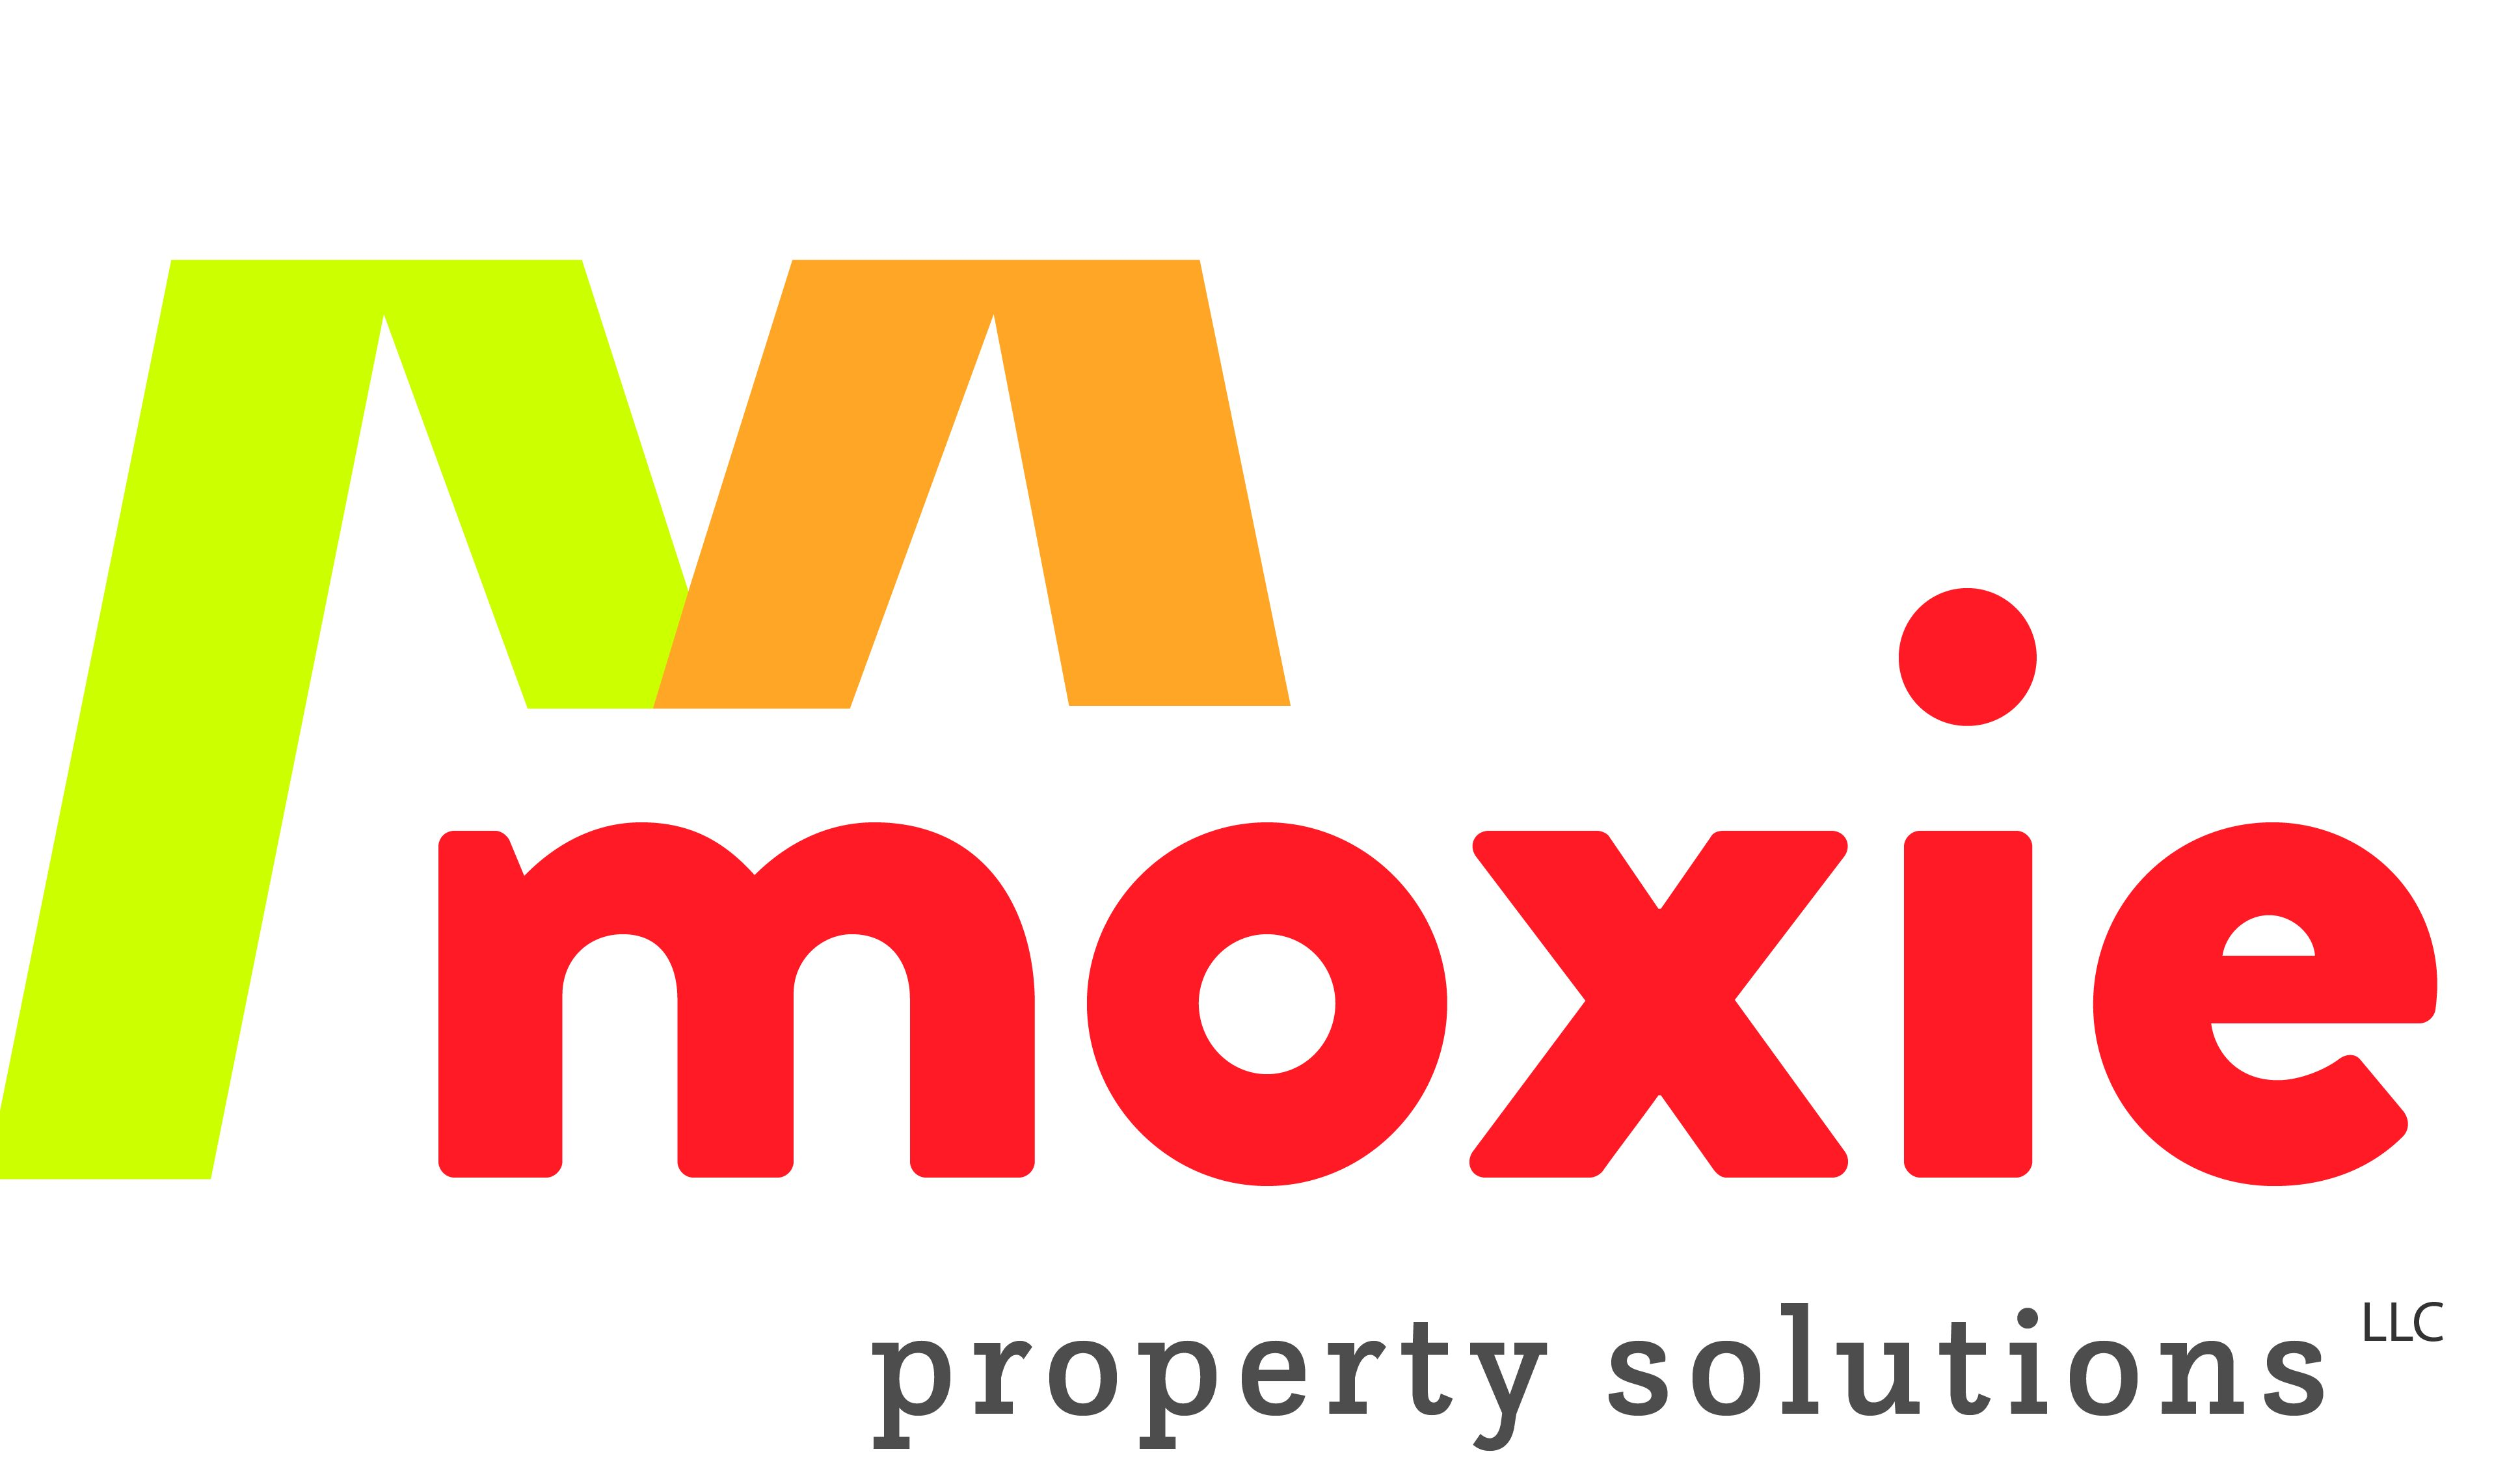 Moxie Property Solutions LLC